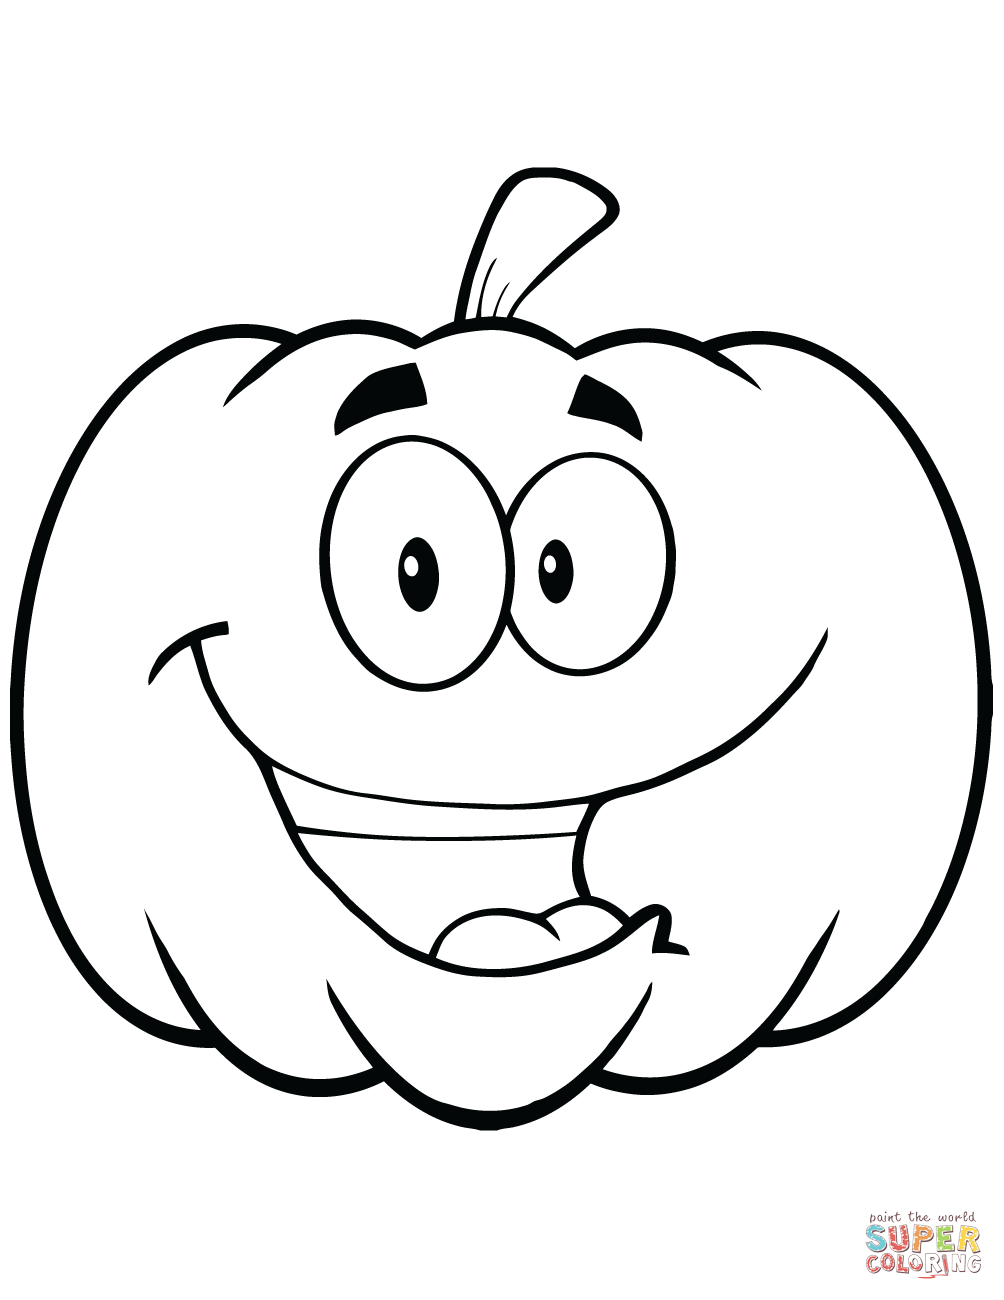 1004x1300 Astonishing Pumpkin Coloring Pages Pdf Page A Simple